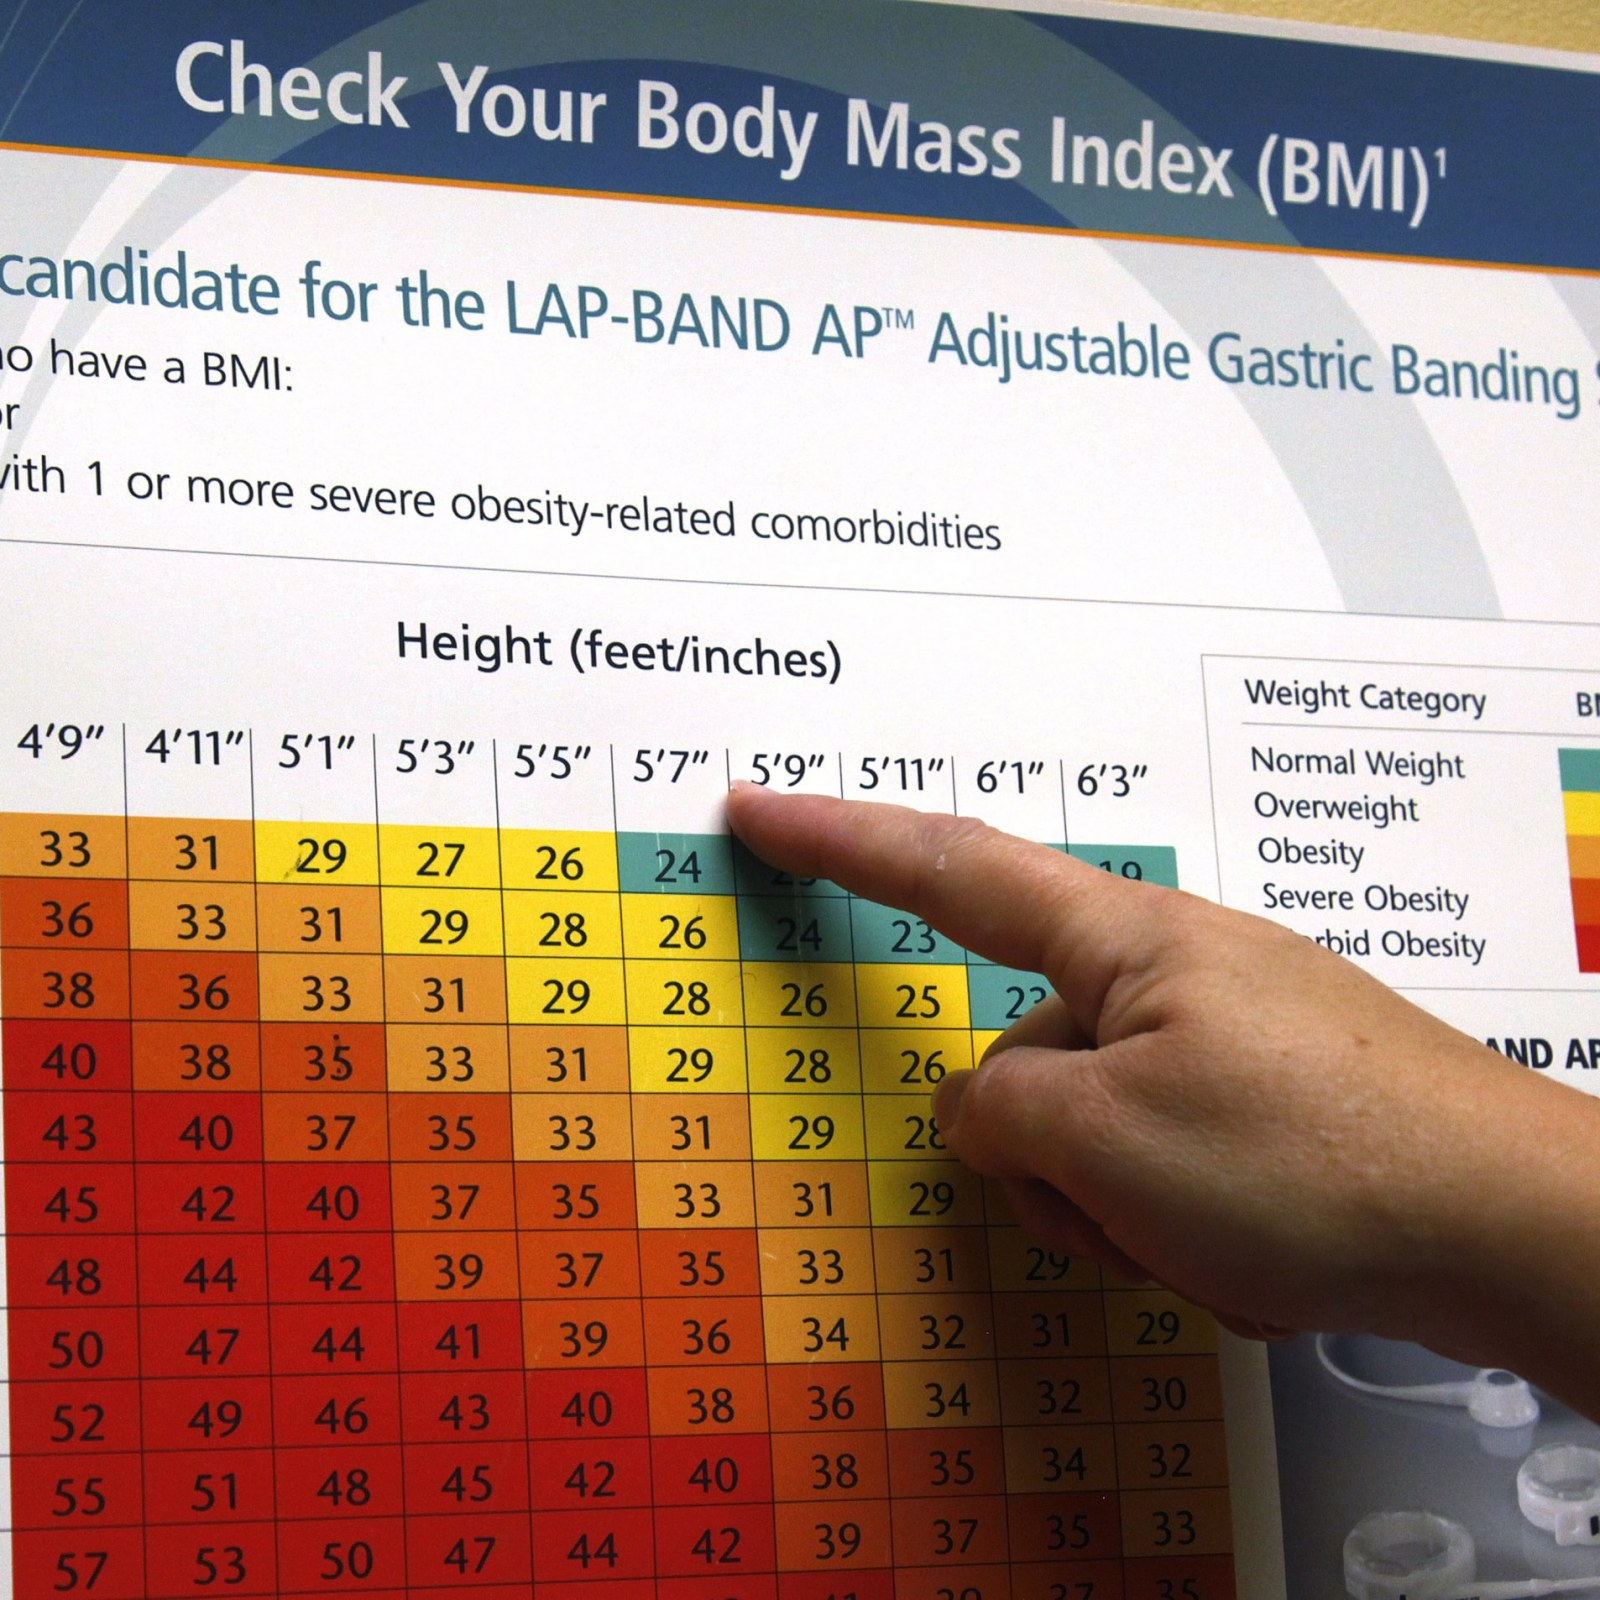 There's a Dangerous Racial Bias in the Body Mass Index